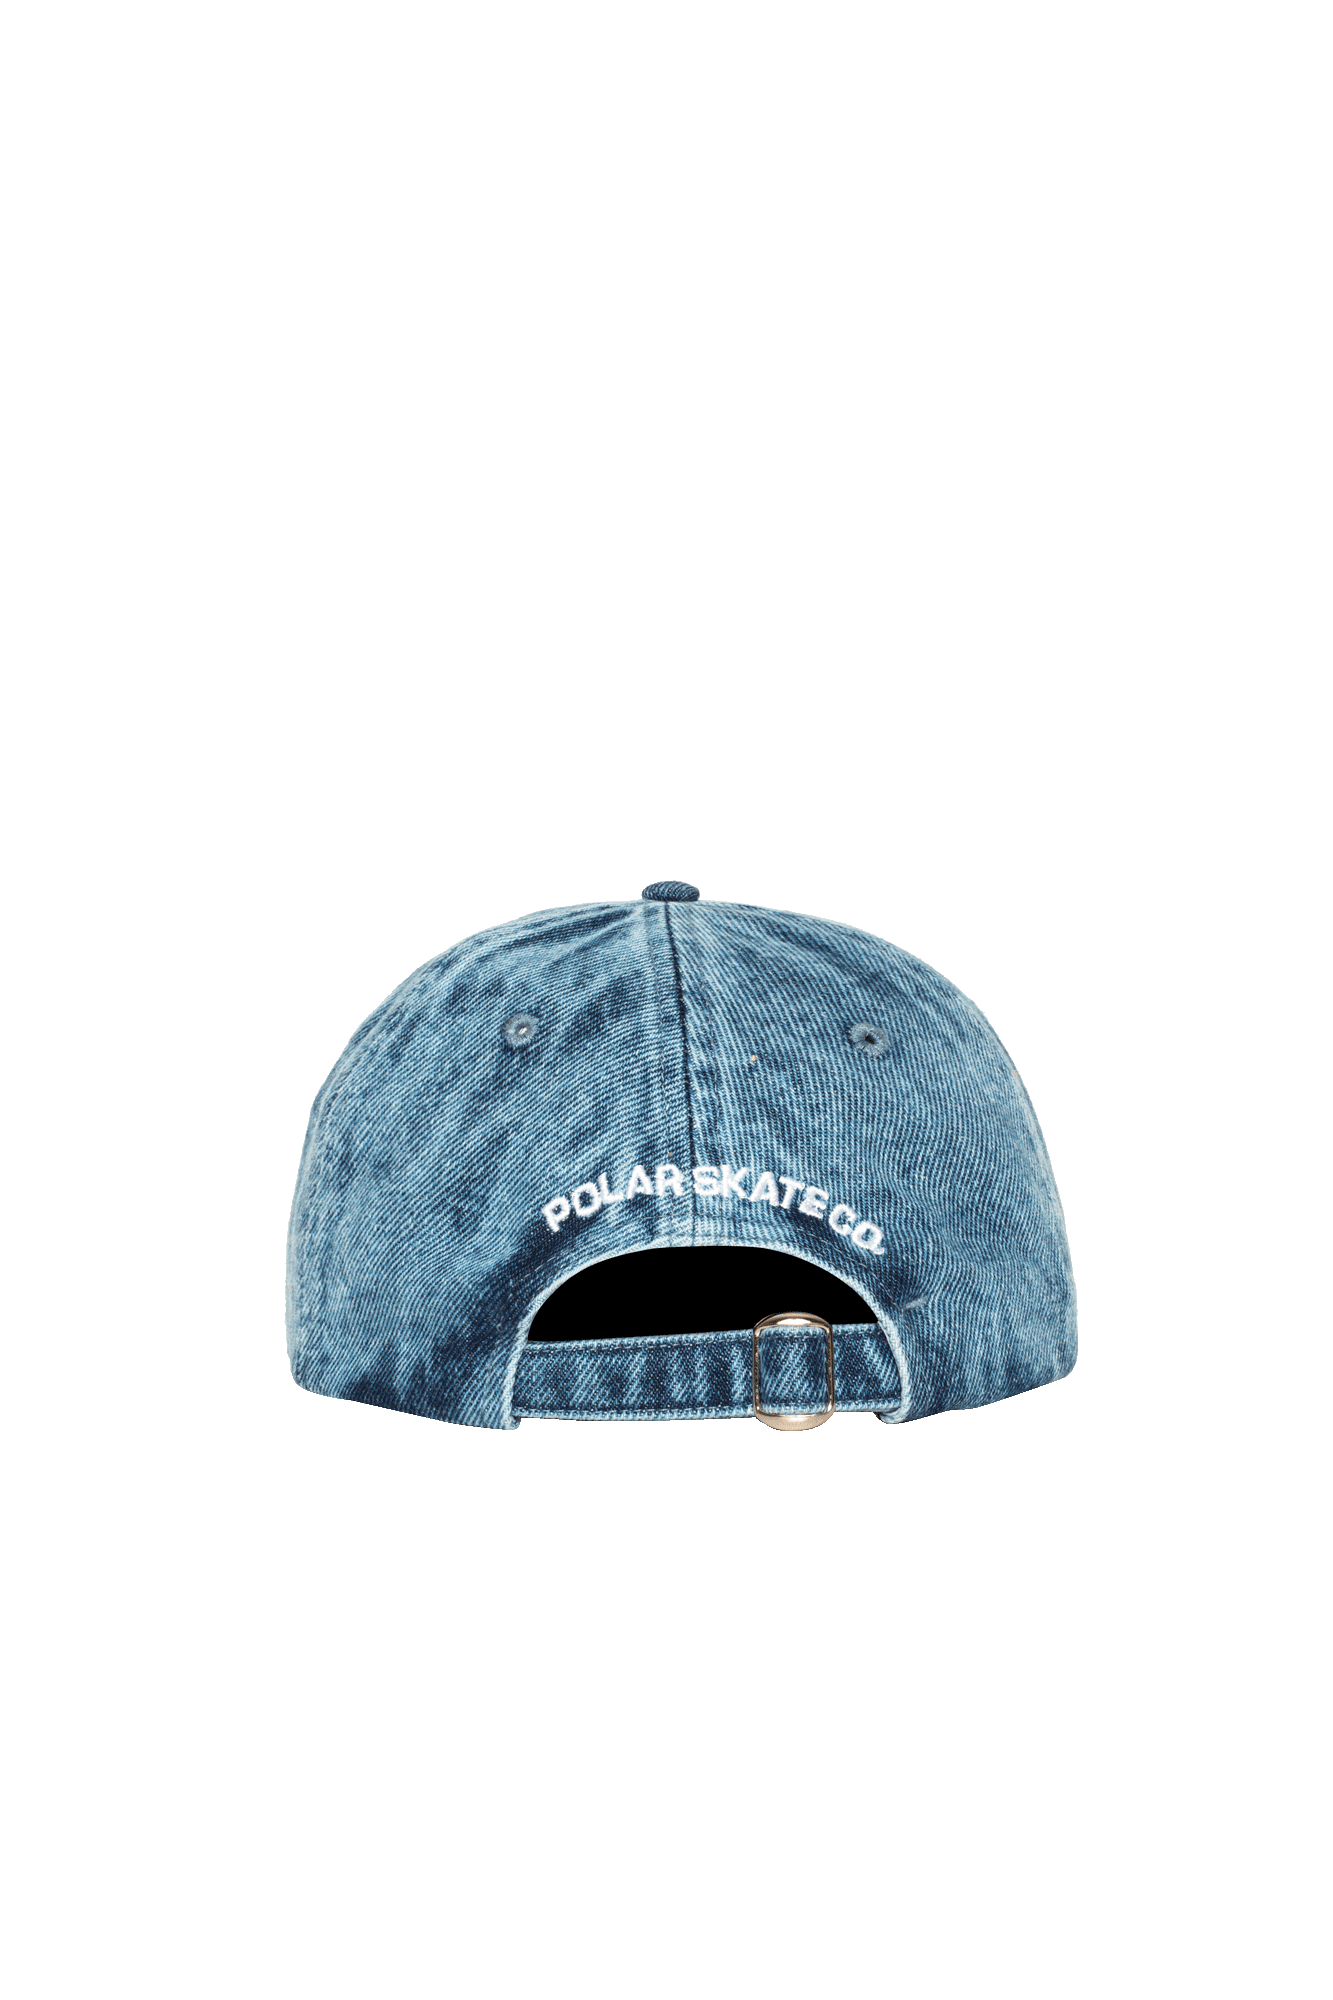 Polar Hats Denim Cap Blue POL- DENIM#CAP#BLUE#OS - One Block Down